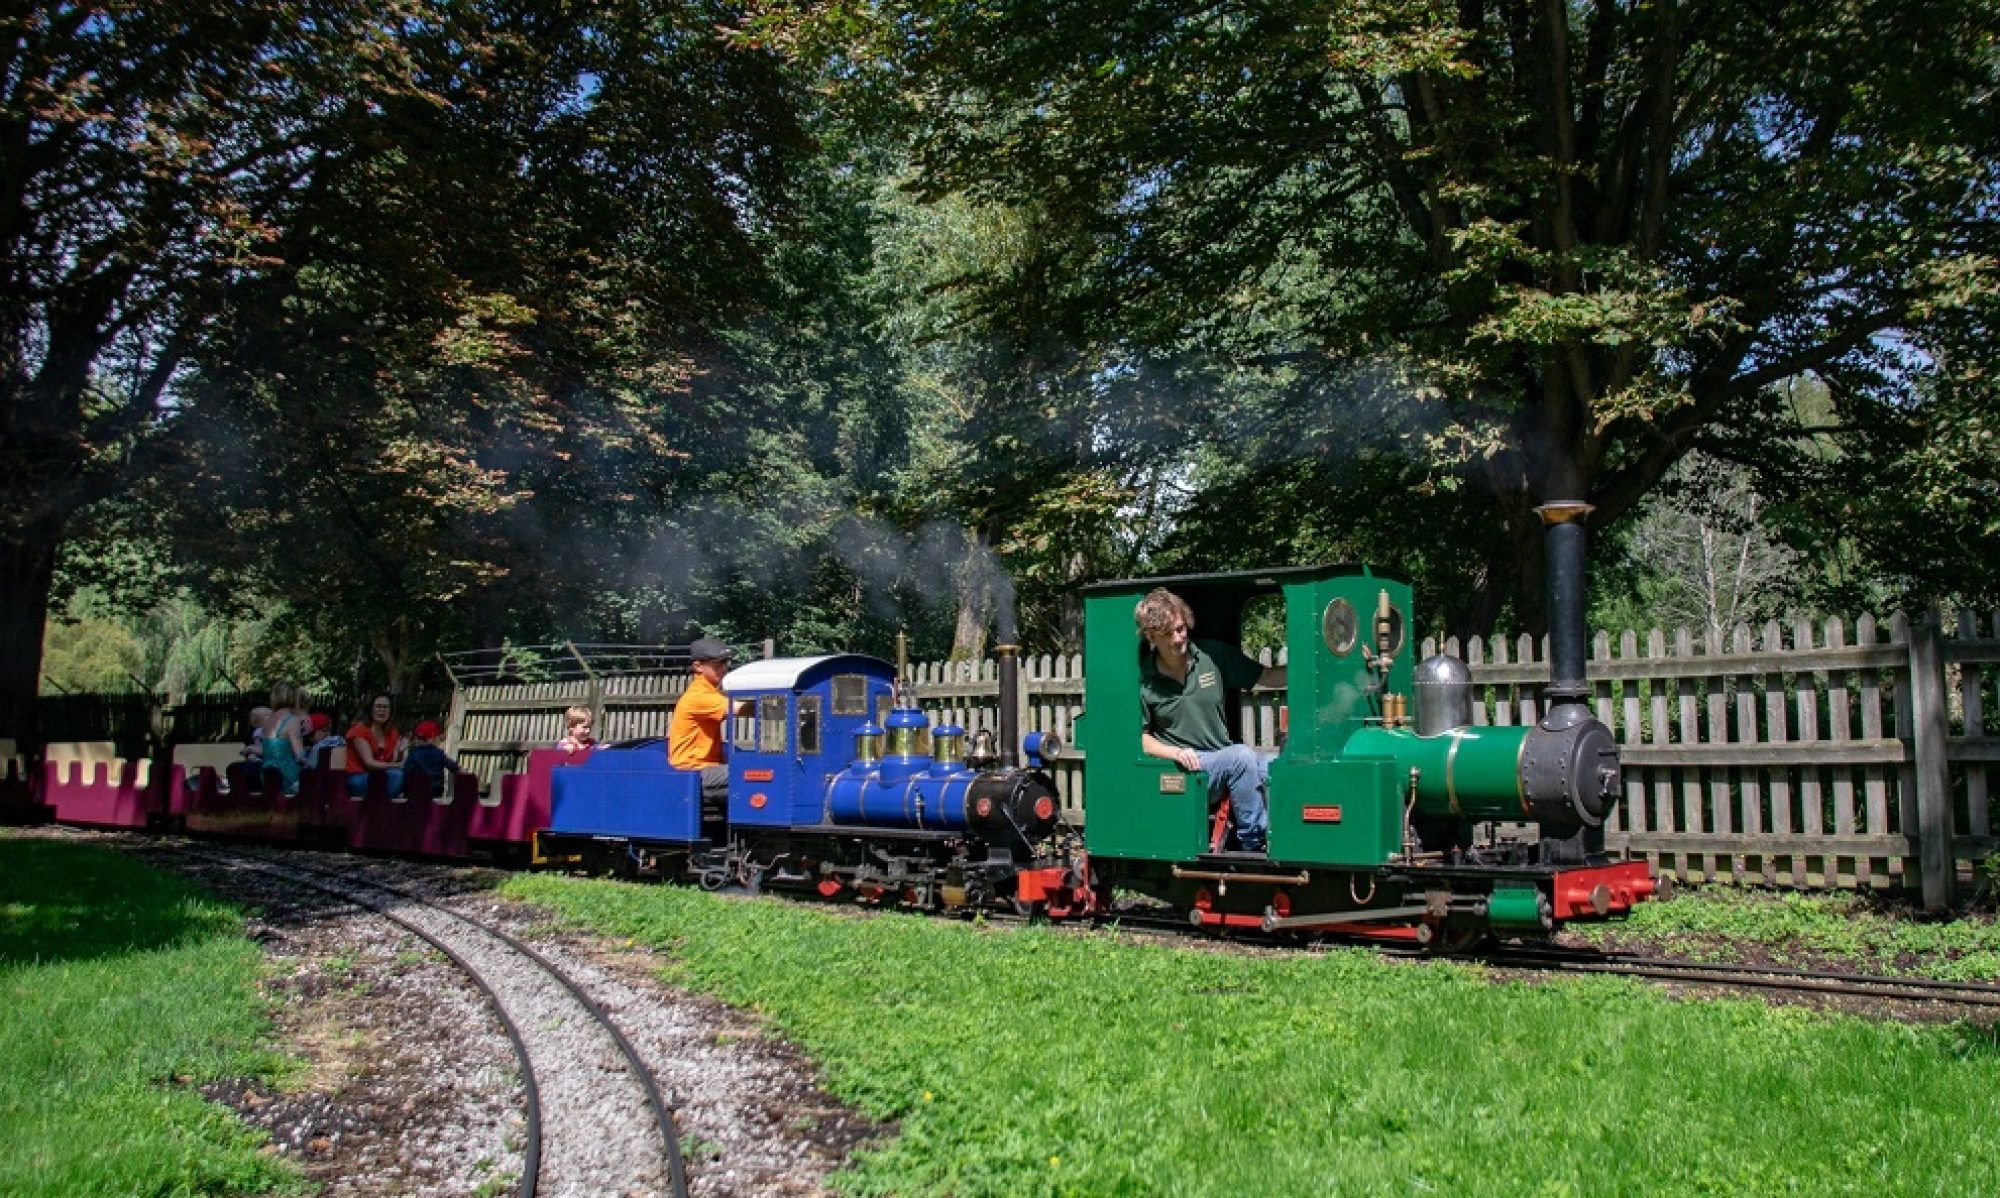 Southern Miniature Railways